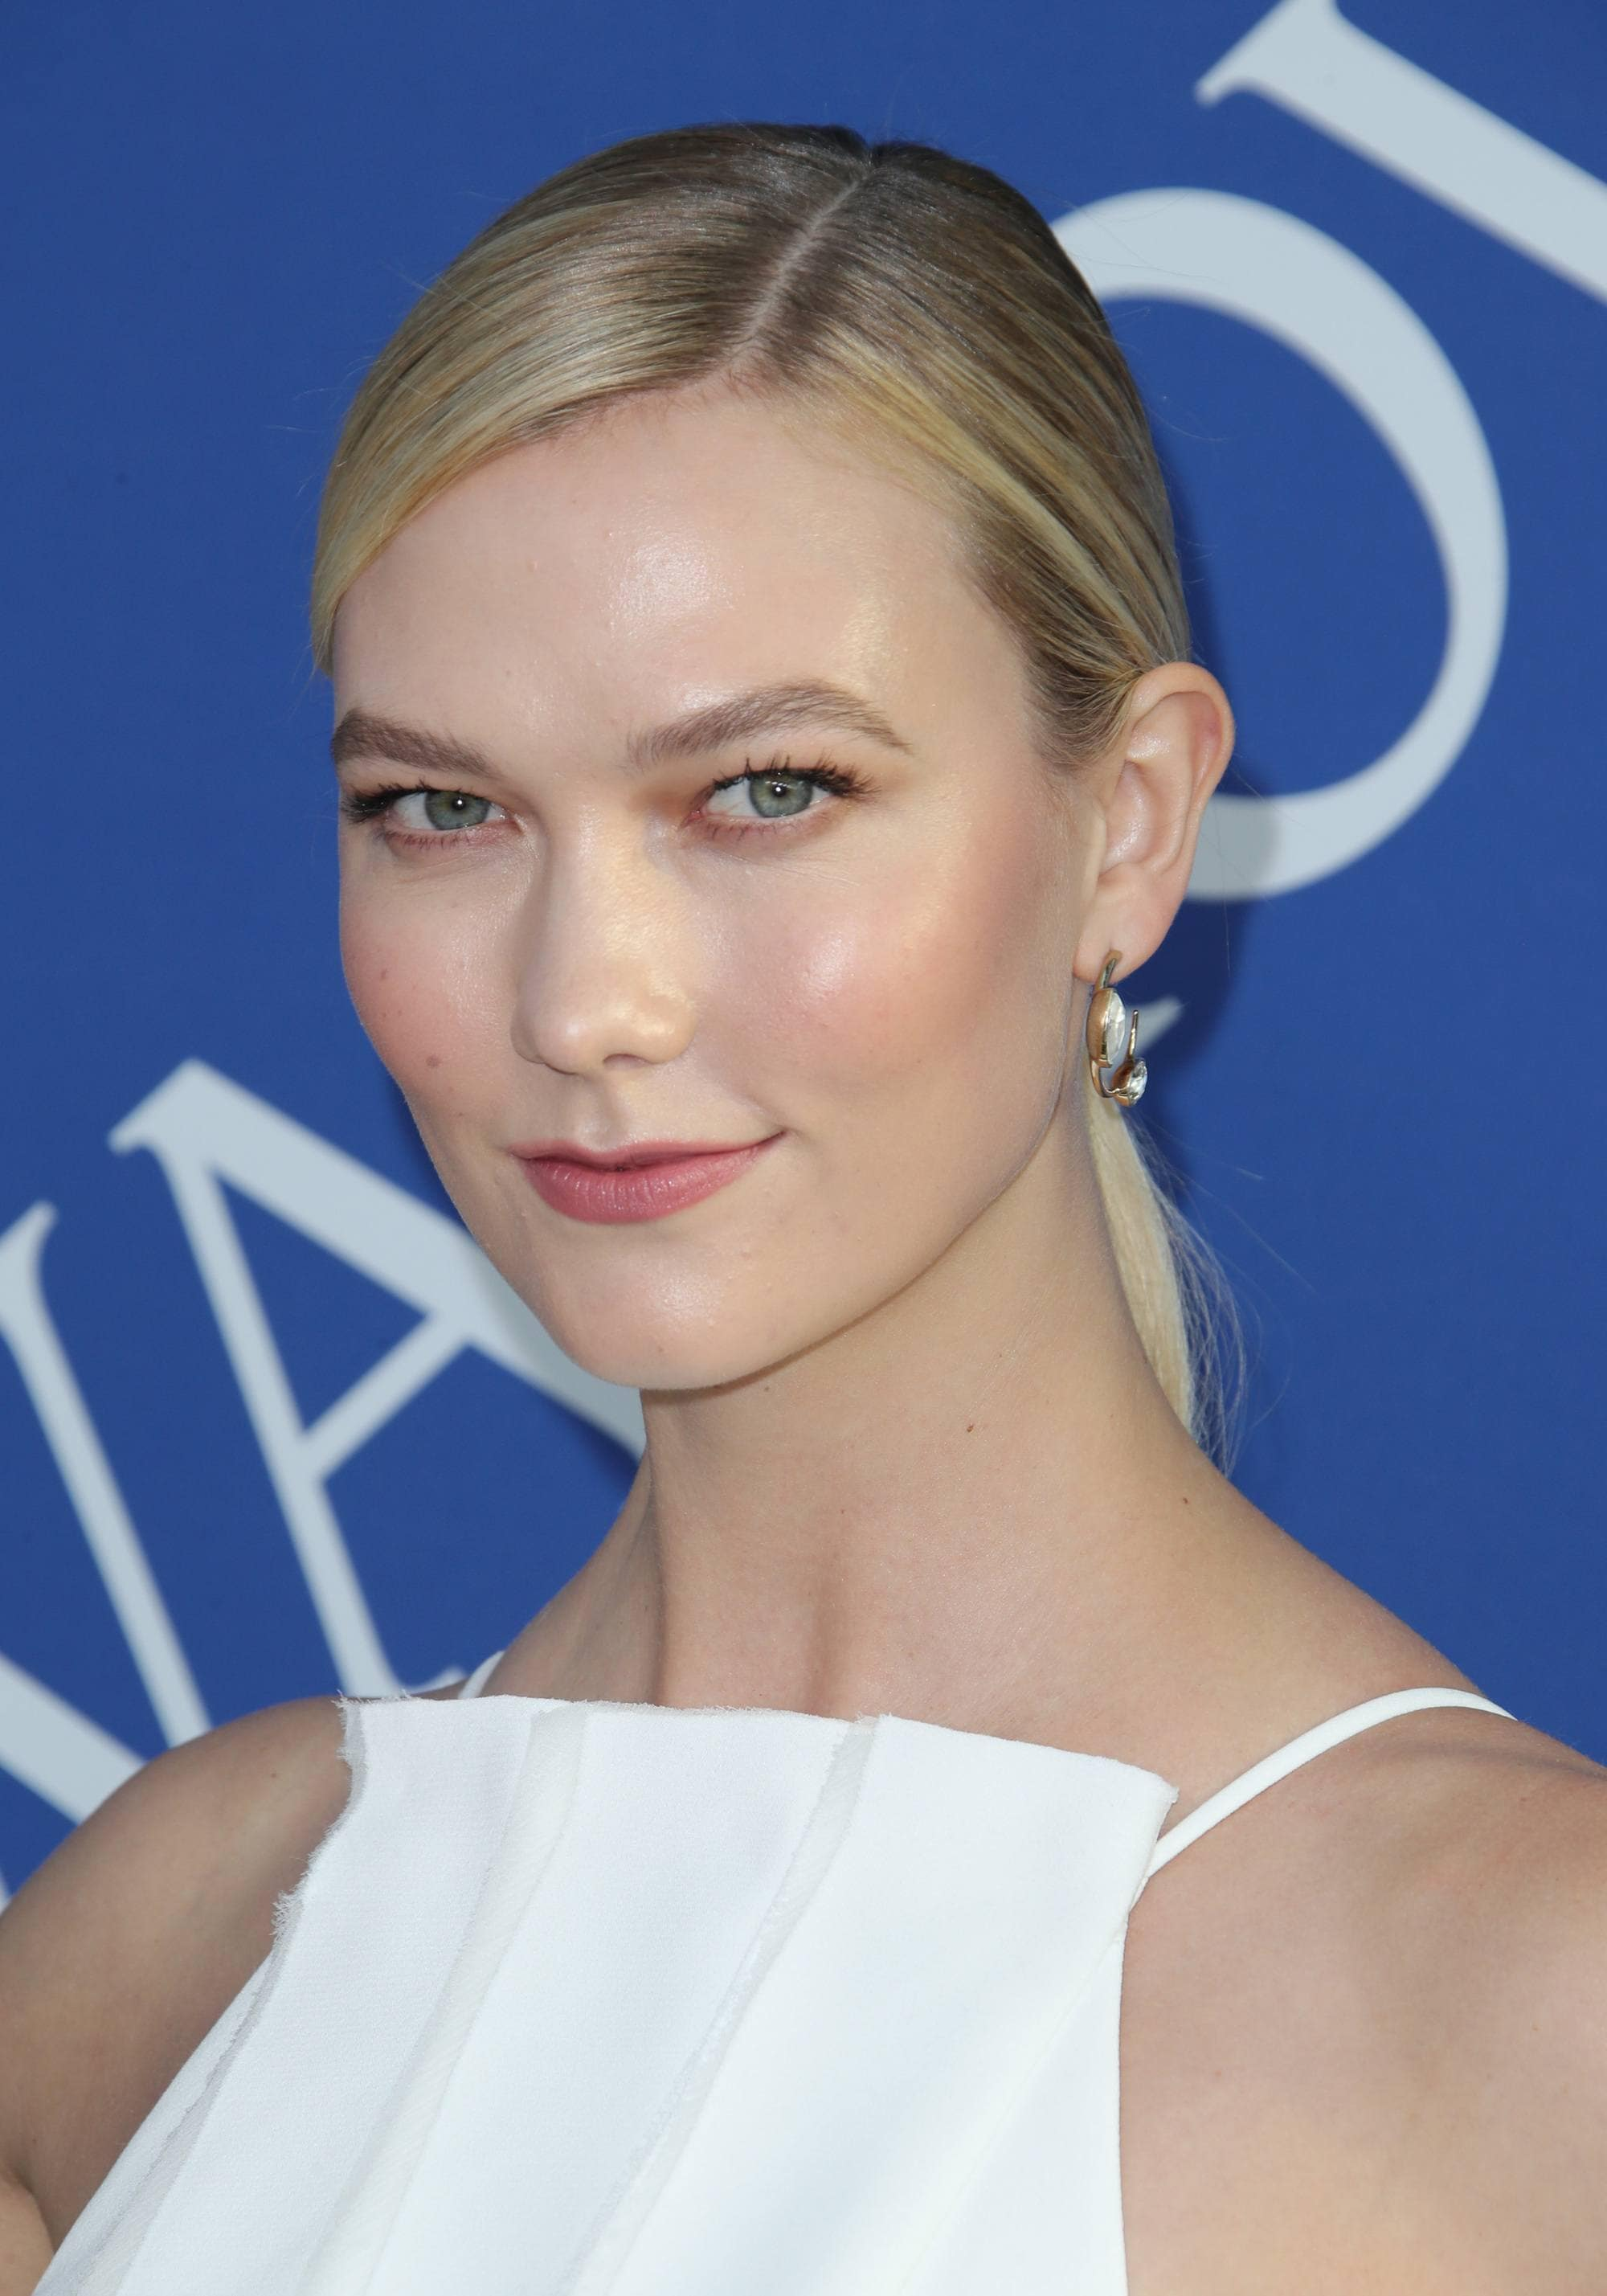 Easy hairstyles for fine hair: Karlie Kloss with straight highlighted blonde hair in side parted low ponytail.